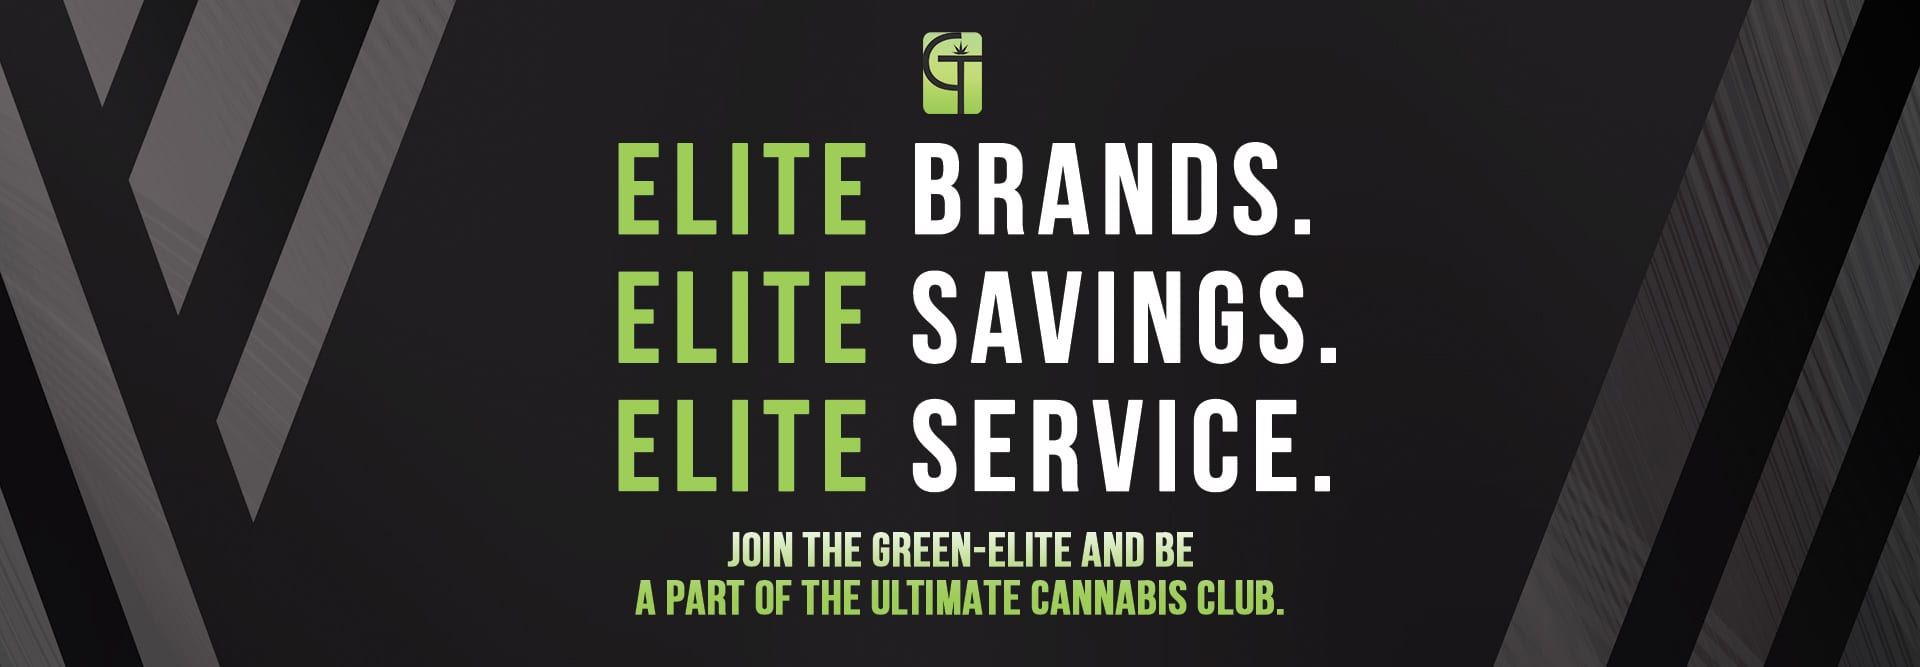 elite-brands-savings-slide